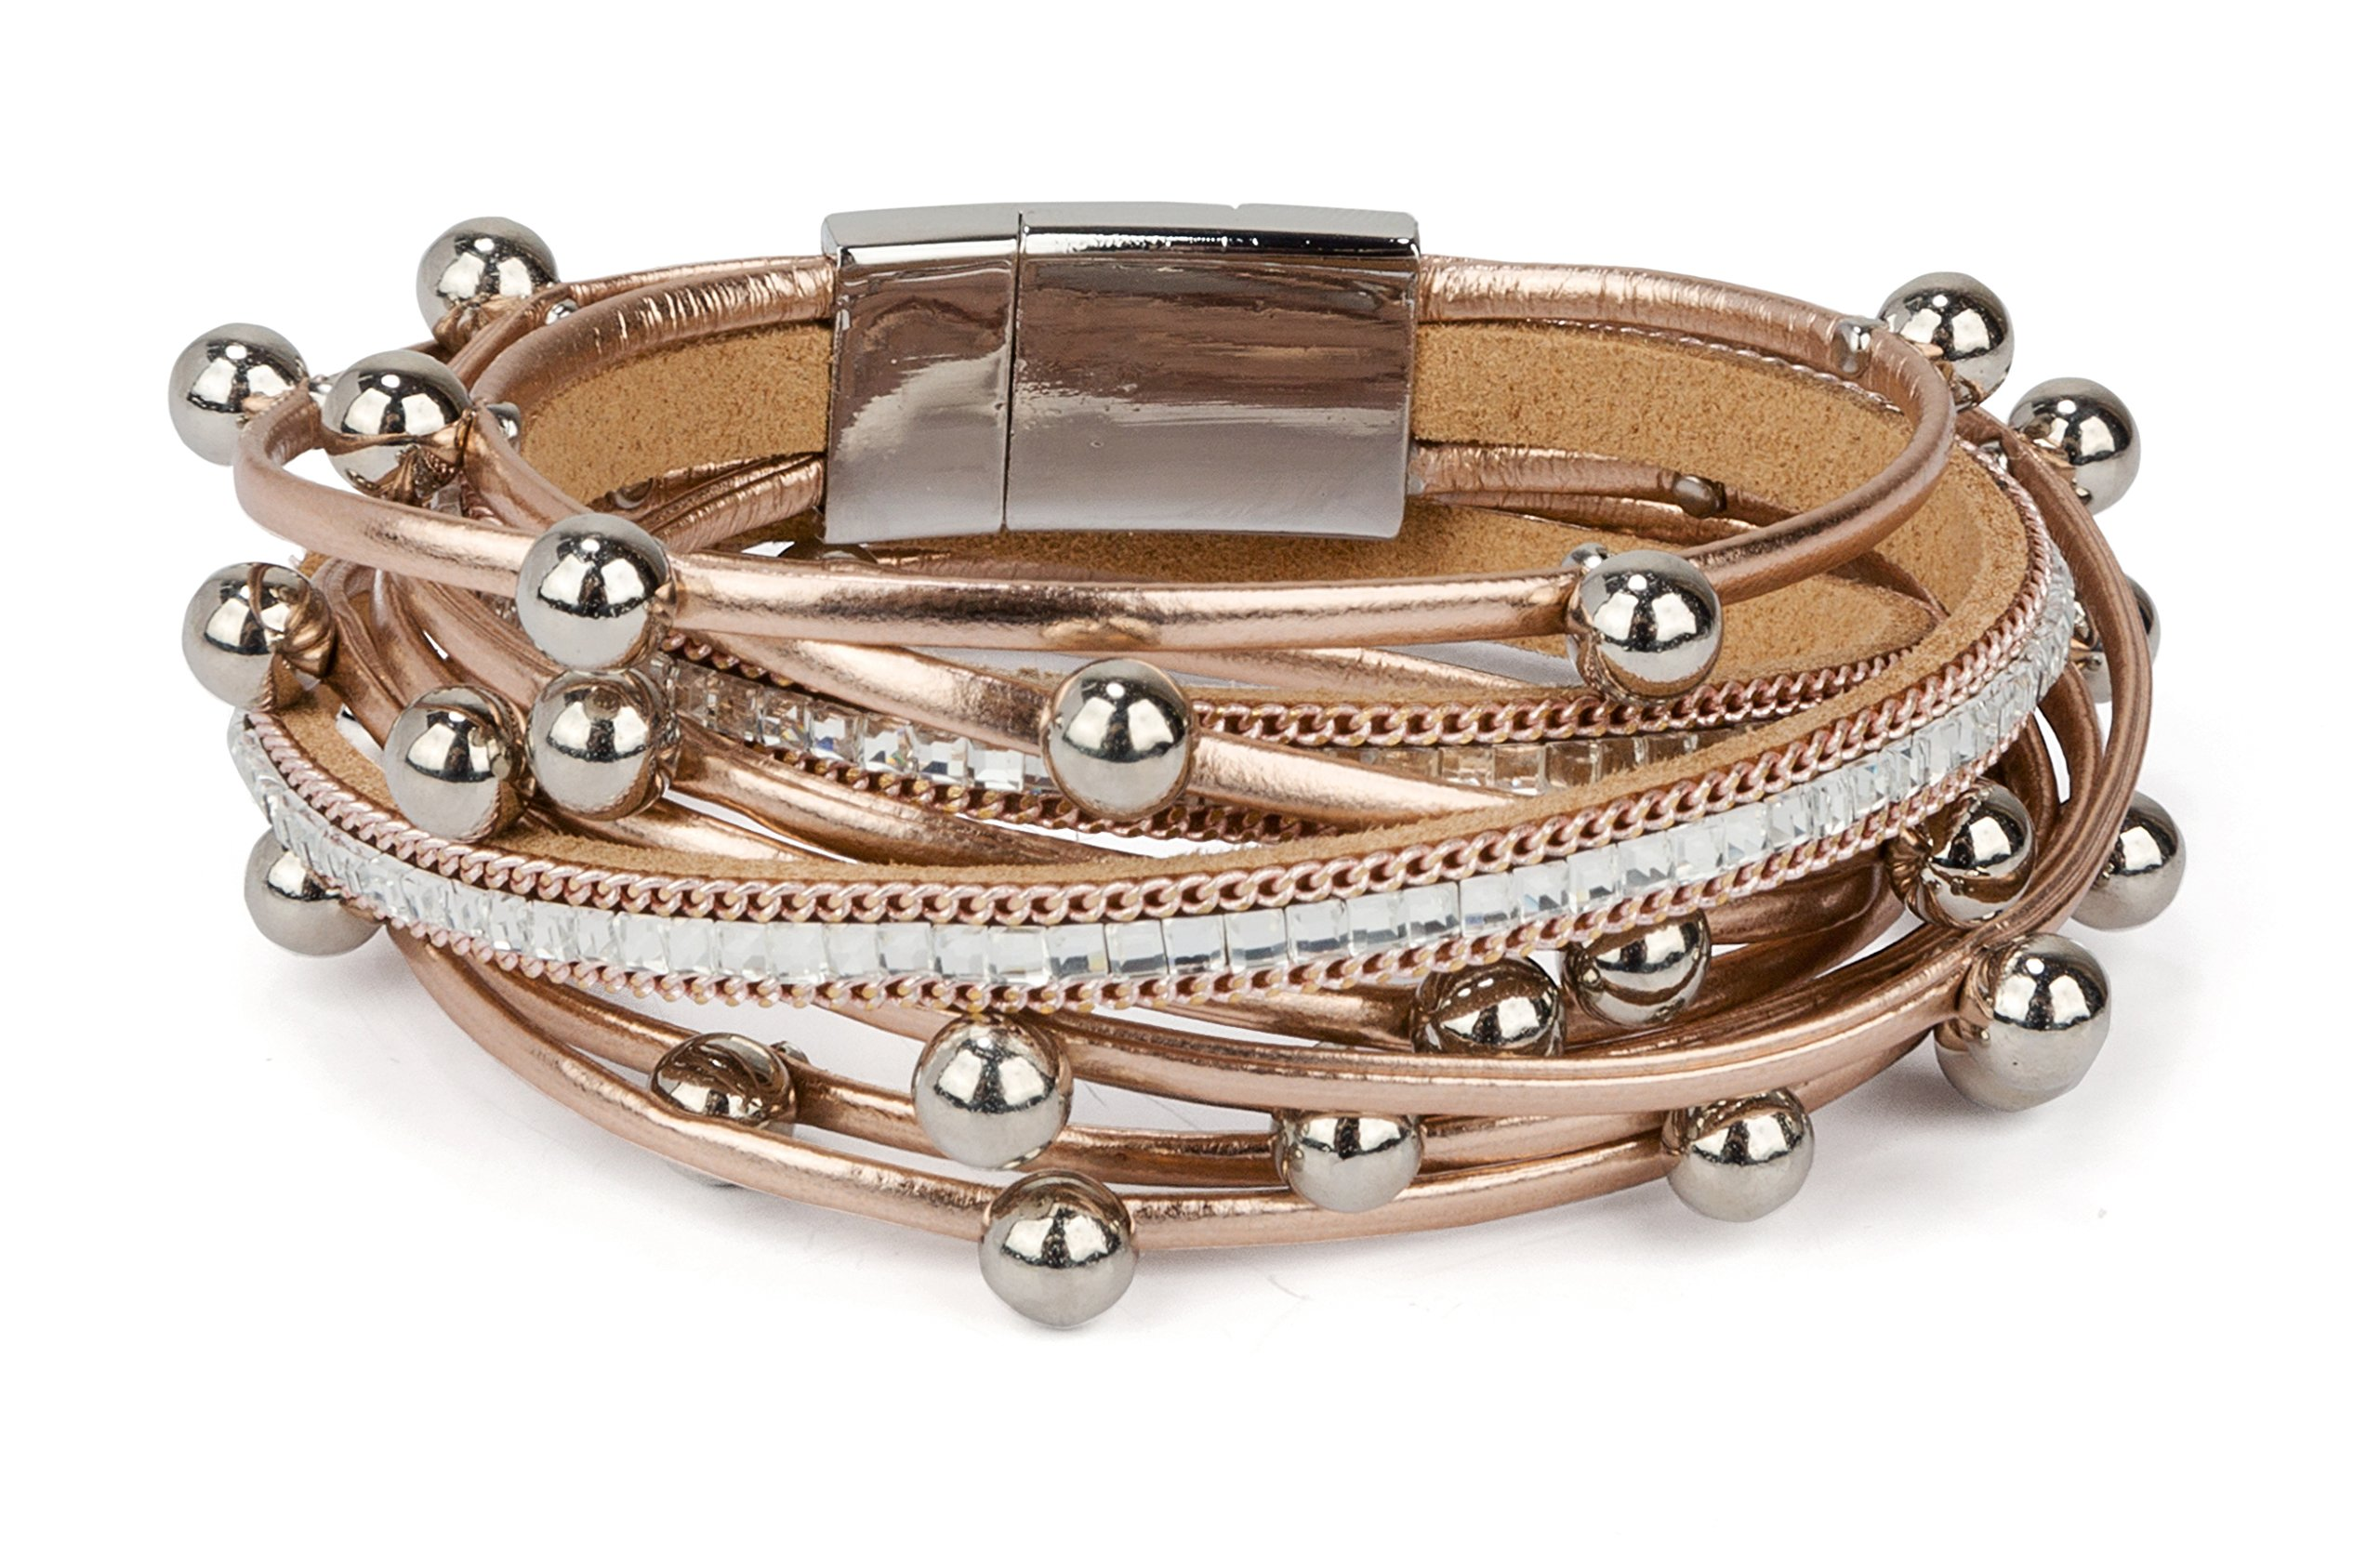 SPUNKYsoul New! Classy Bracelet Multi Strand in Champagne Rose Gold with Rhinestones, Orbs & Magnet Clasp for Women Collection